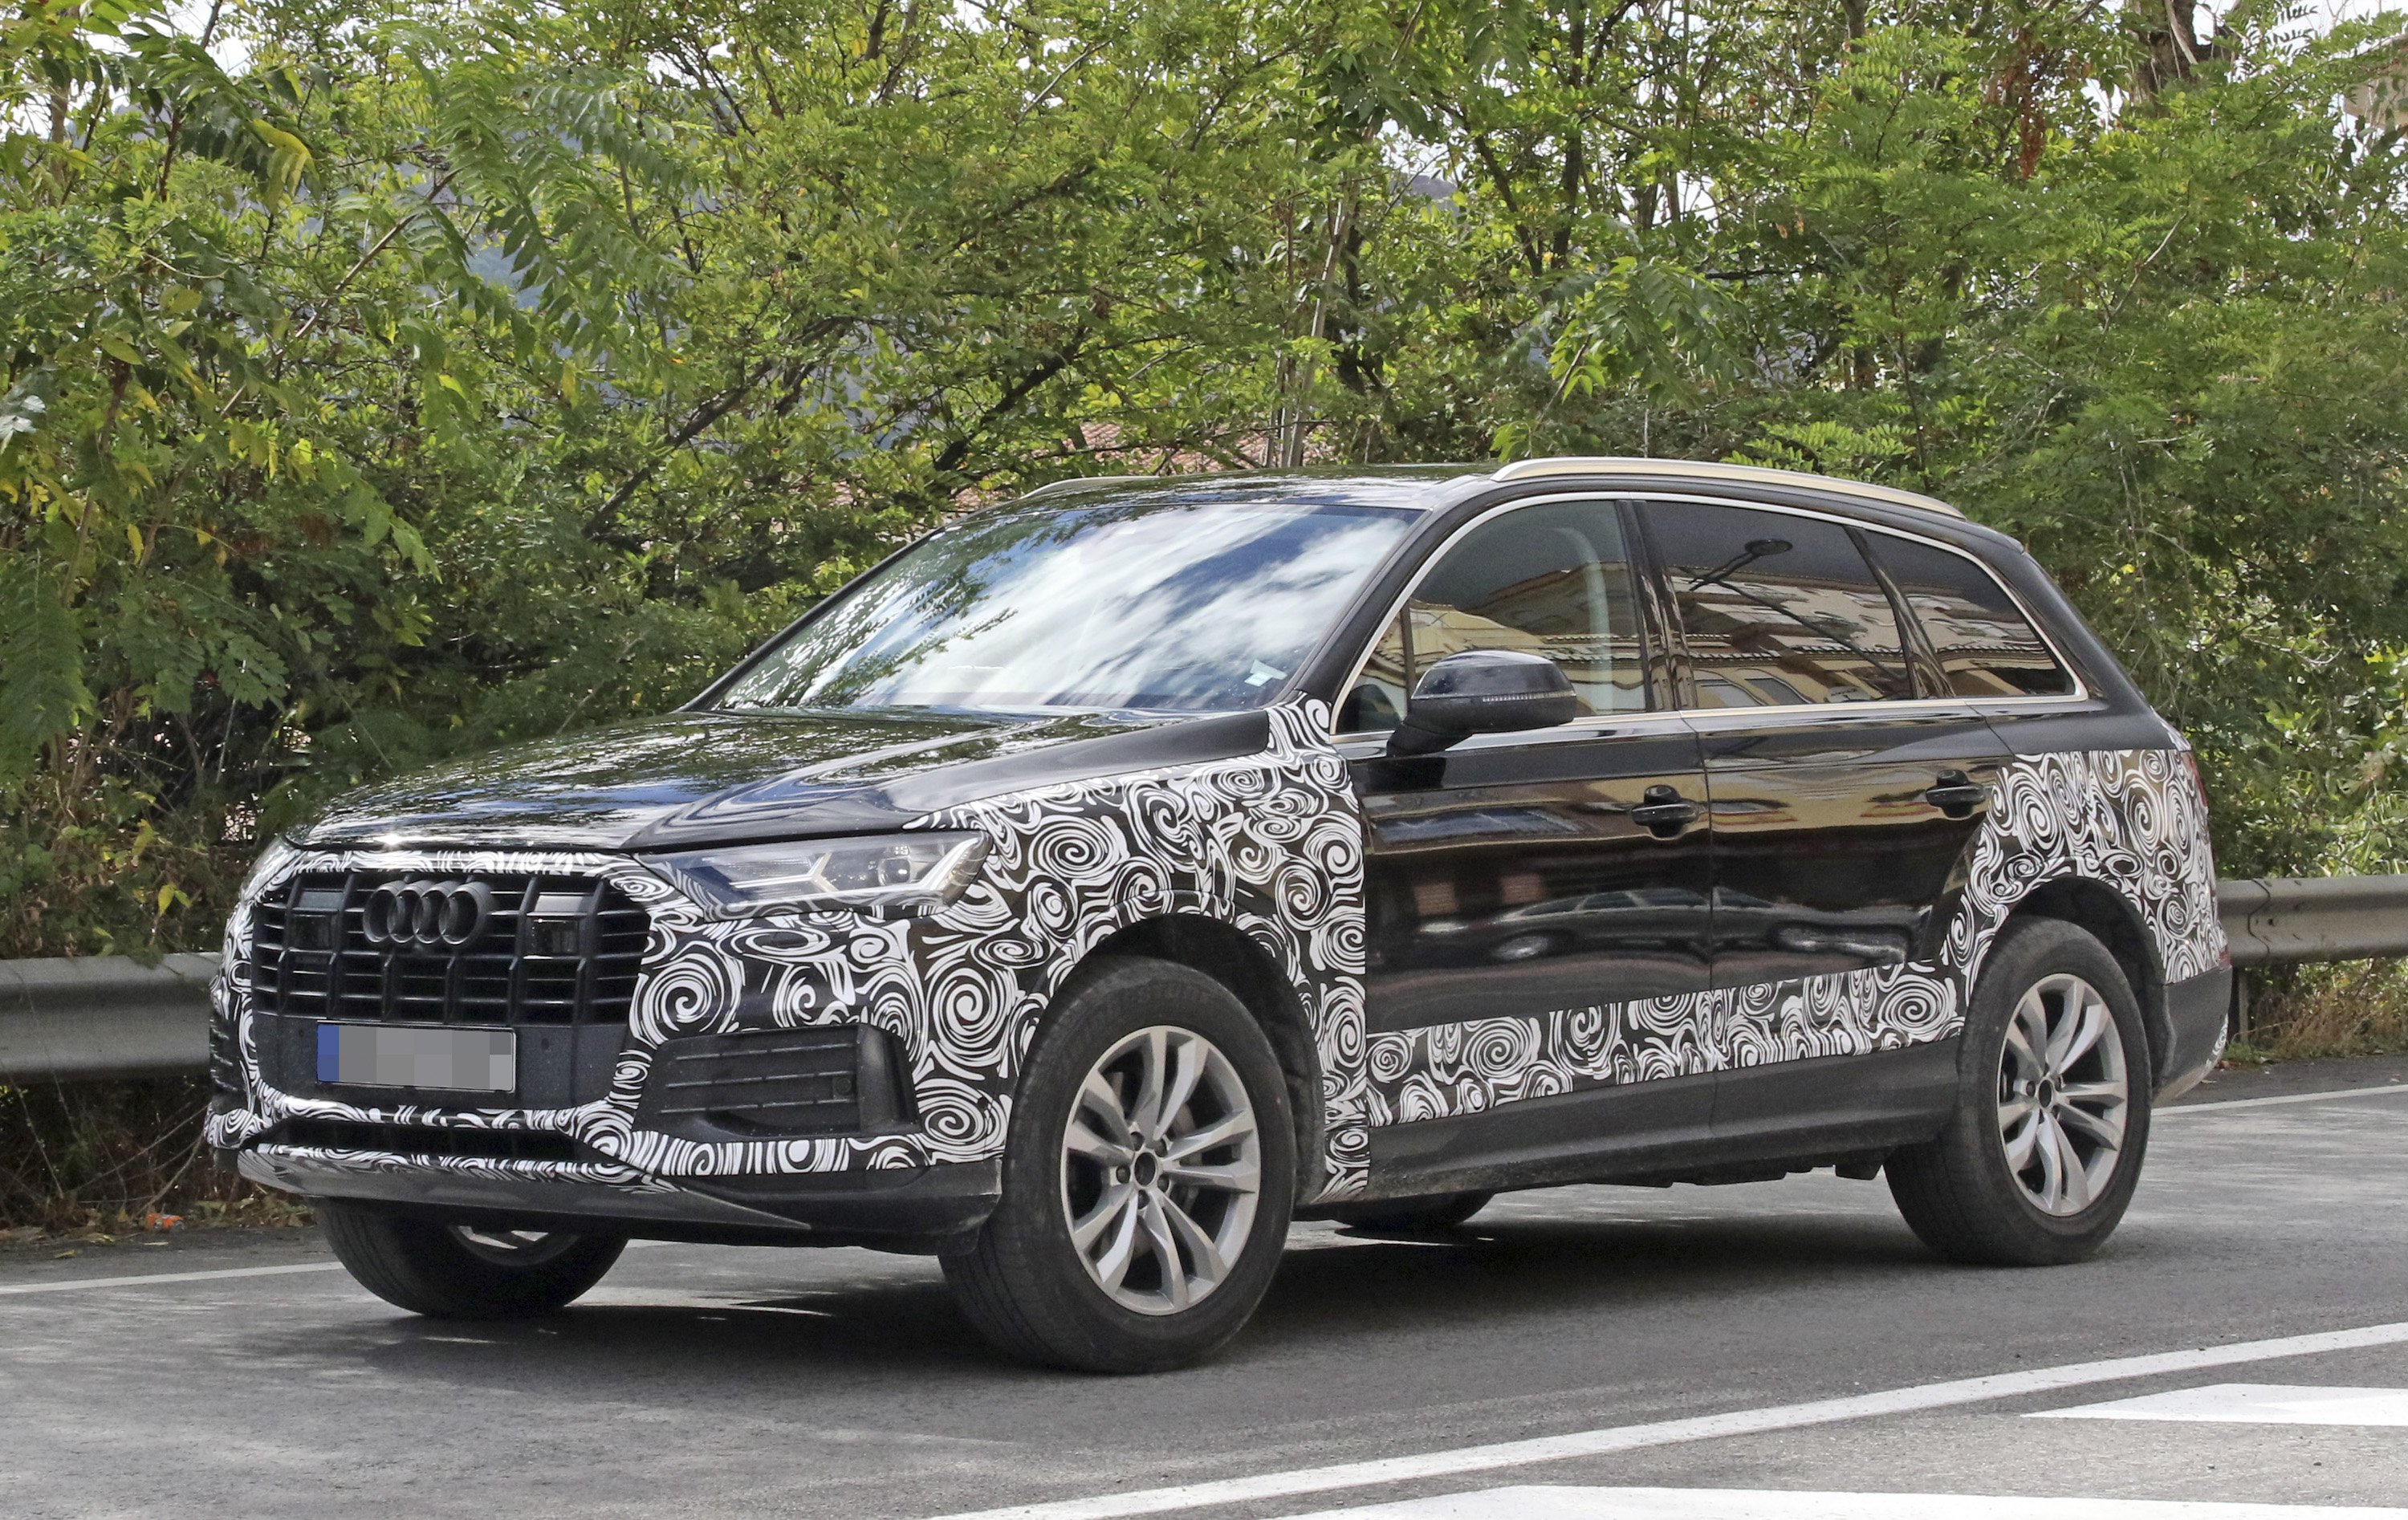 54 The 2020 Audi Q7 Price and Review